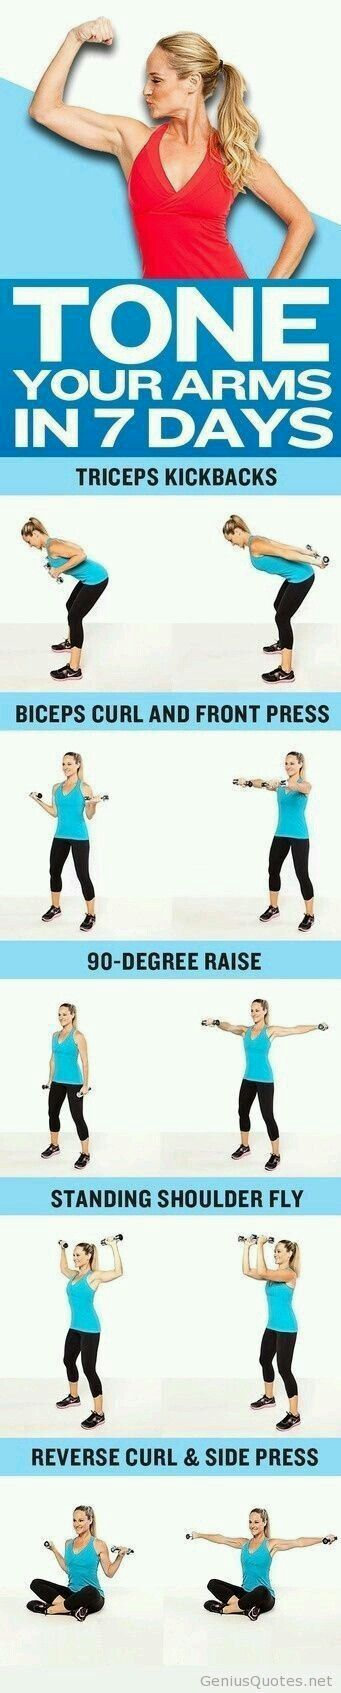 Excercise arms..